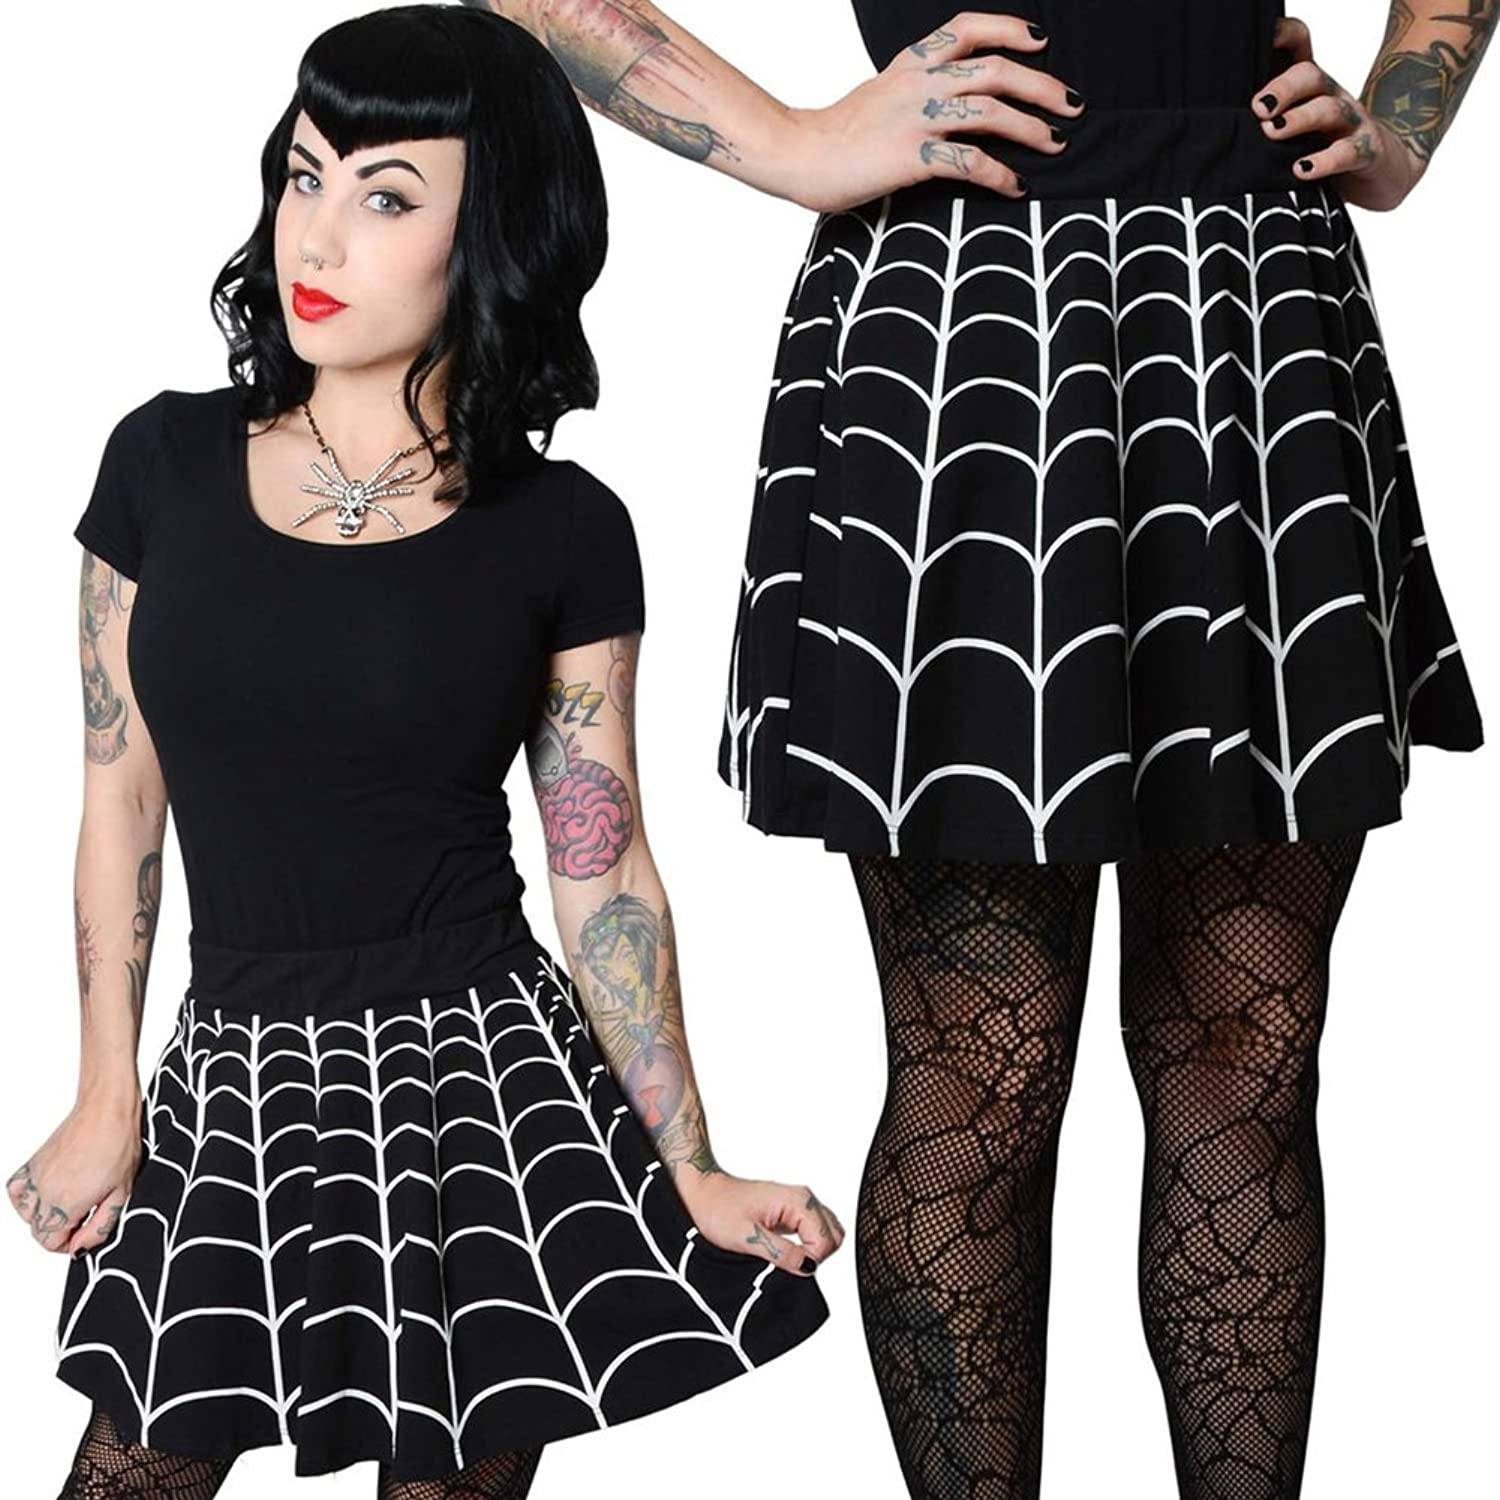 Vintage Retro Halloween Themed Clothing Web White Skater Skirt  AT vintagedancer.com